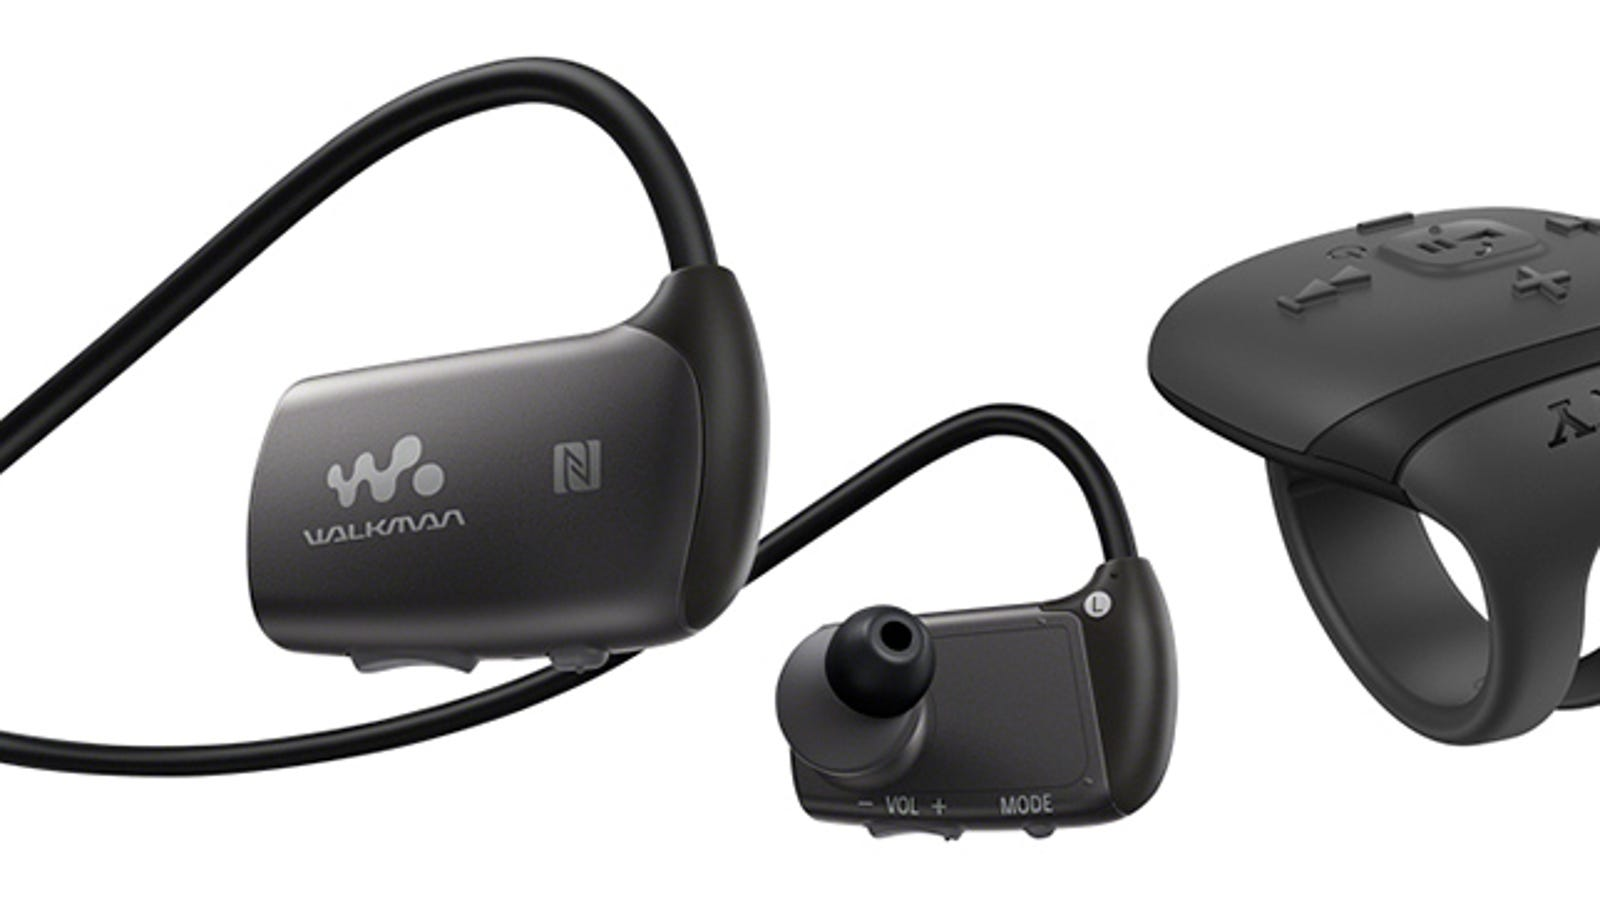 radium x wireless earbud headset